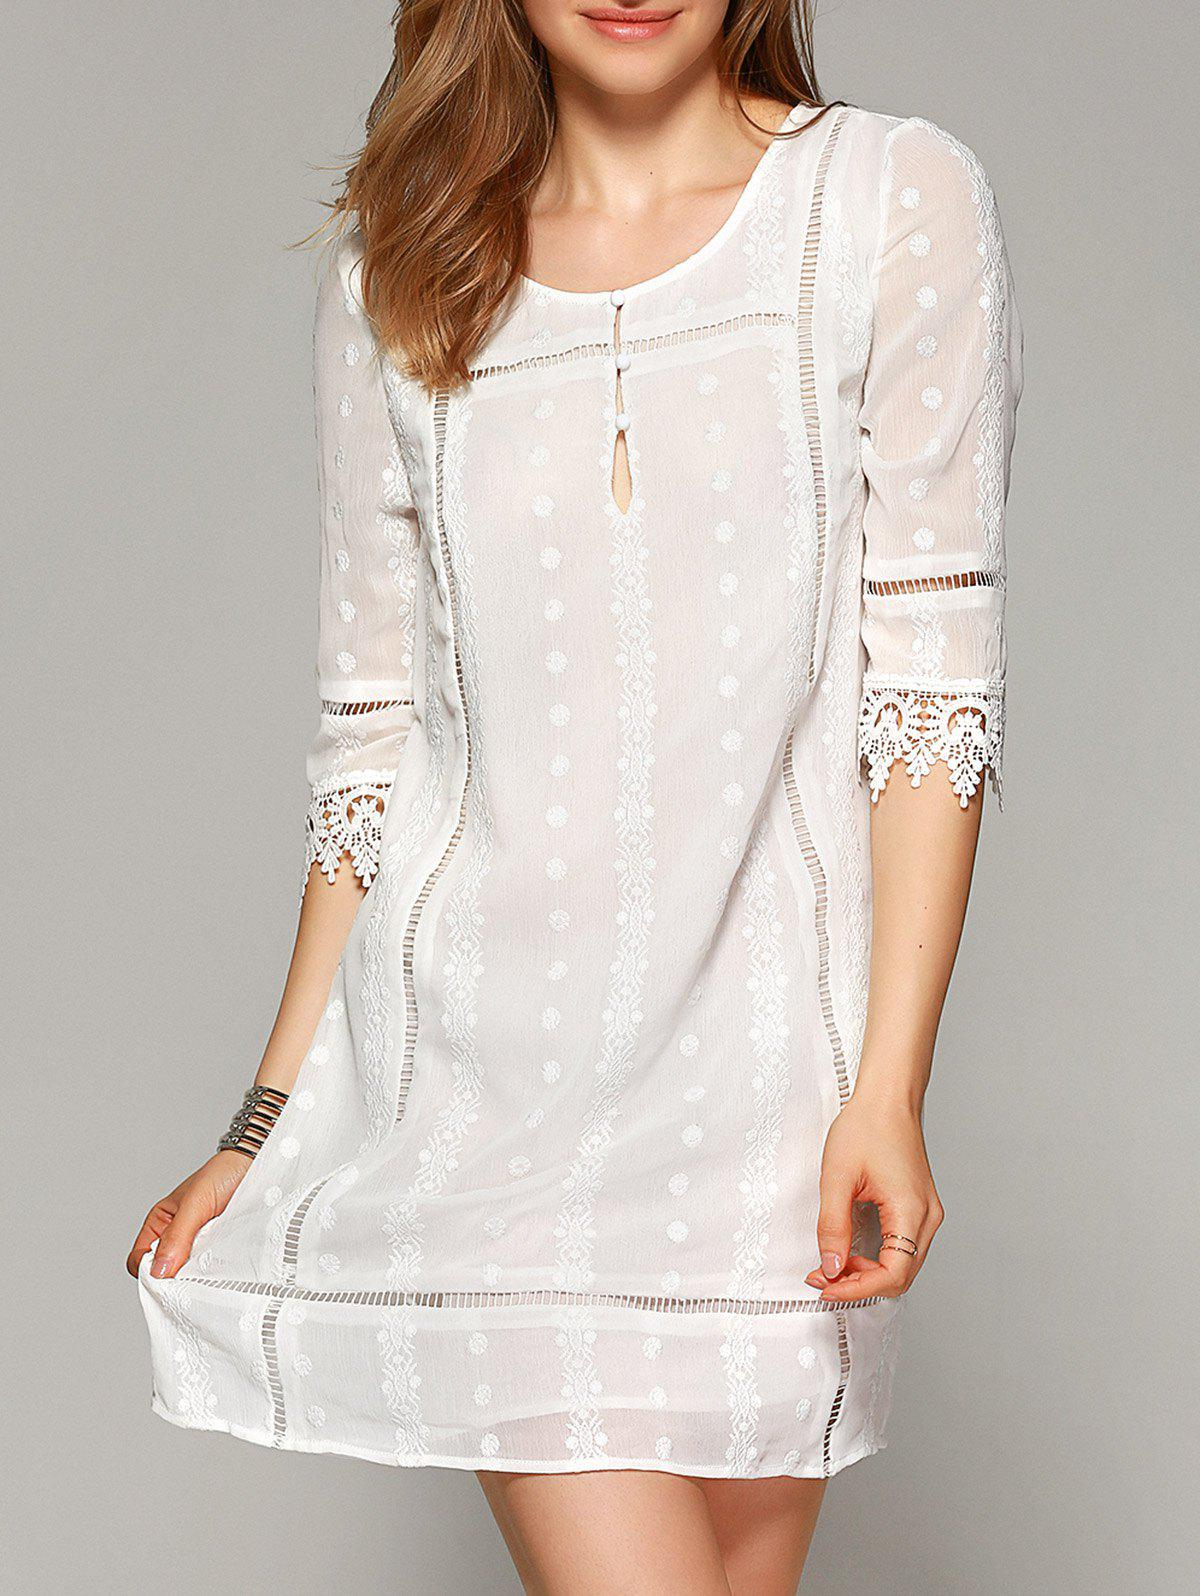 Sweet Lace Patchwork Hollow Out Dress - OFF WHITE XL